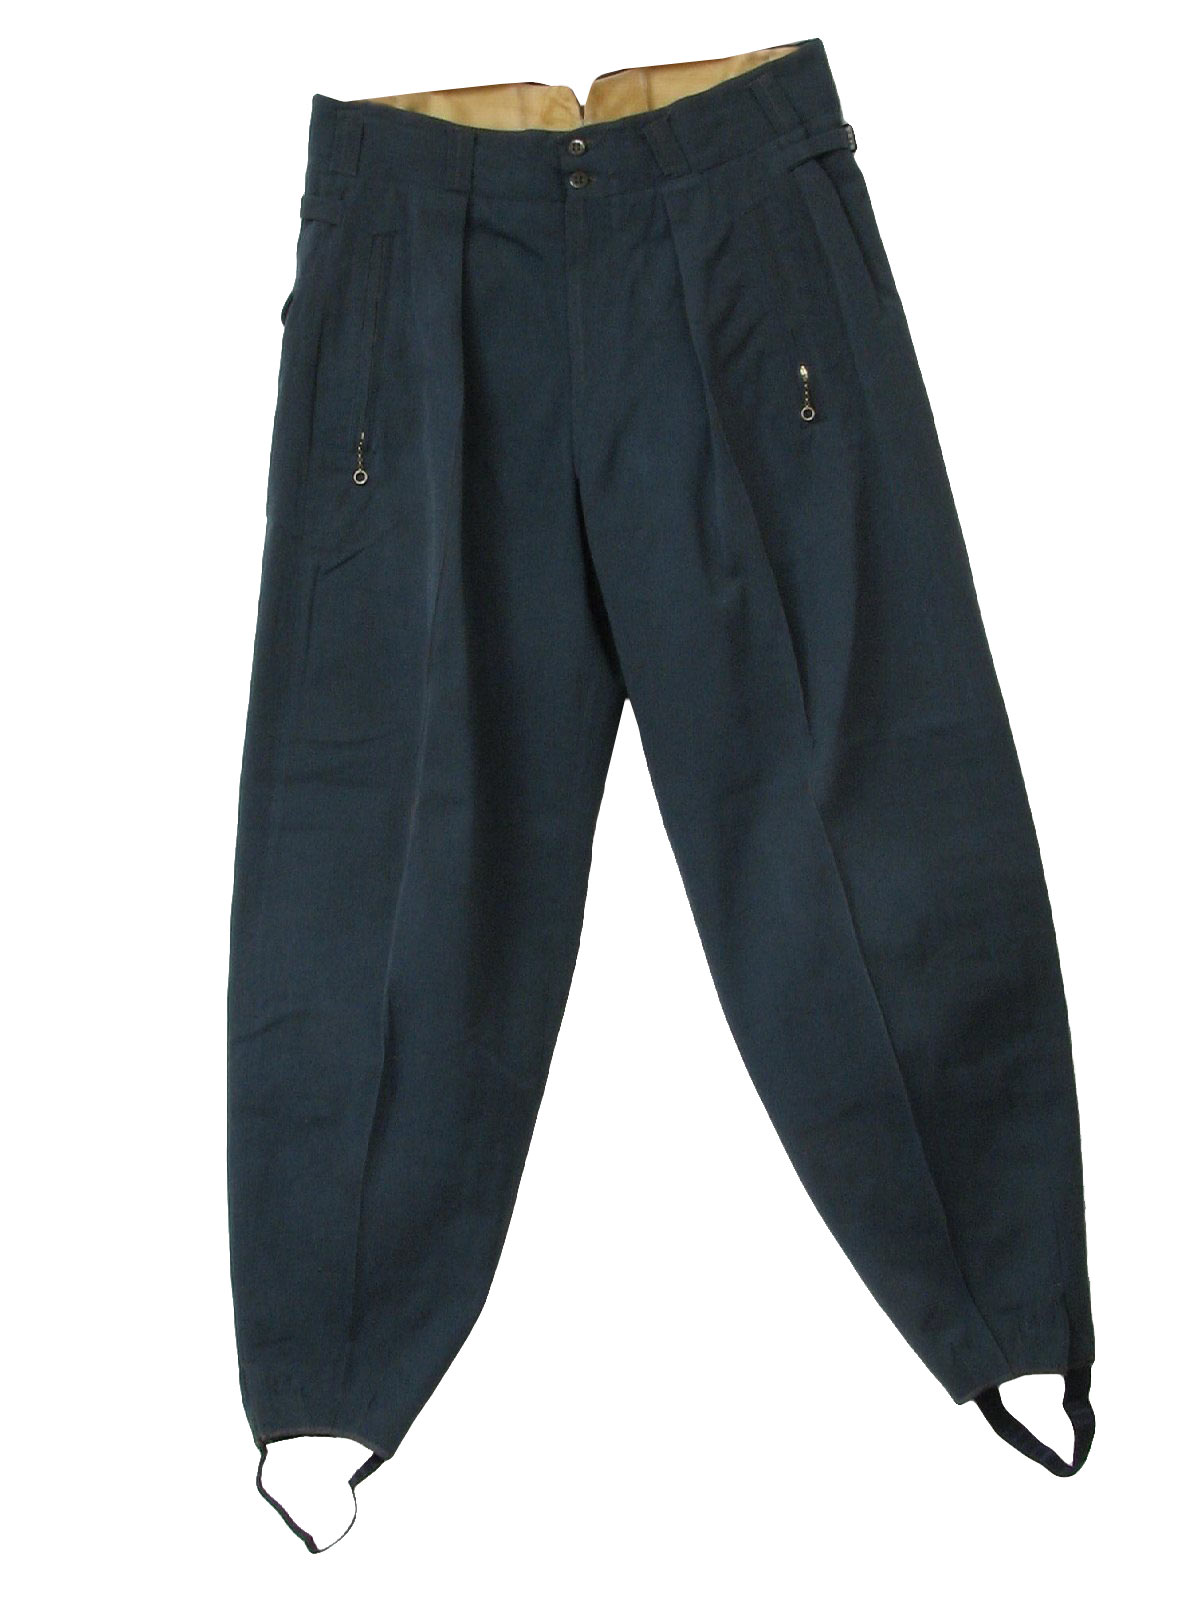 Vintage Sun Valley Authentic Ski Wear Forties Pants Late